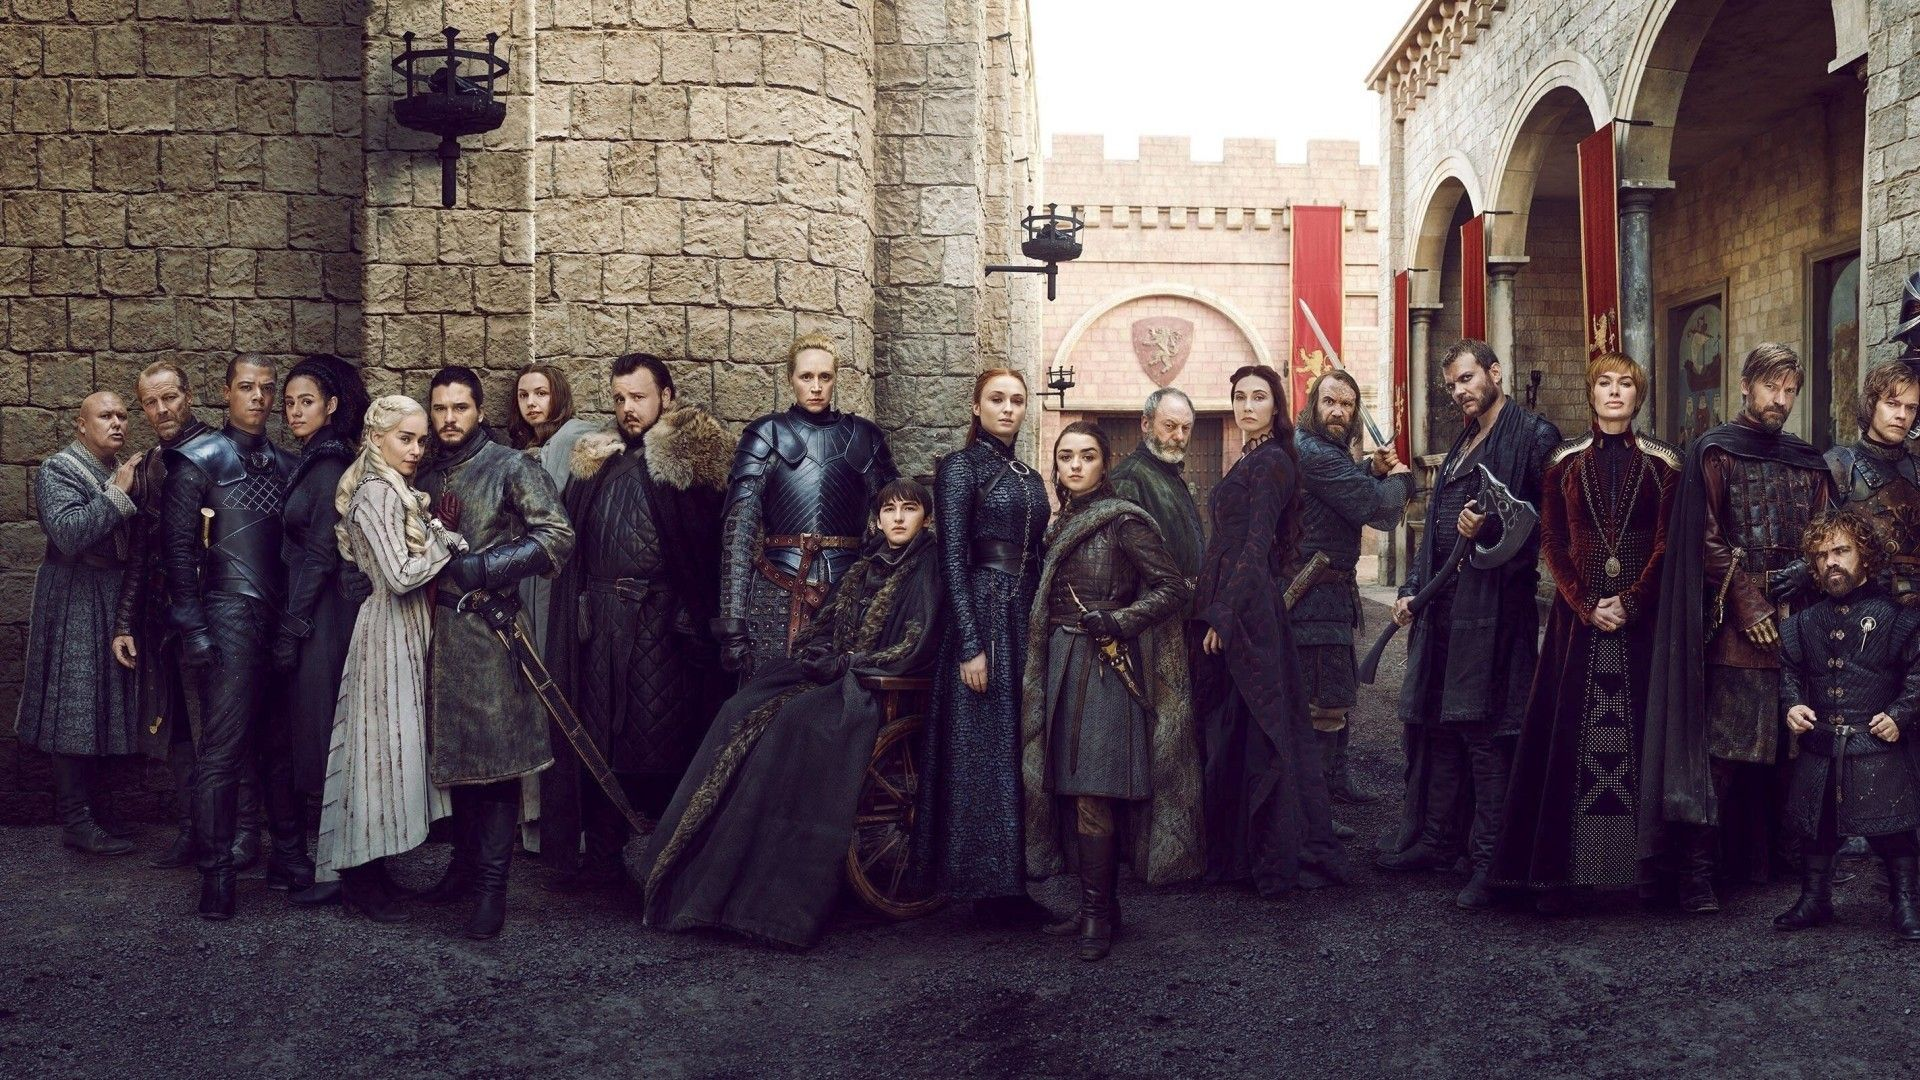 Game of Thrones Season 8 Full Cast Poster HD - Best Movie Poster Wallpaper HD | Game of thrones cast, It cast, Season 8